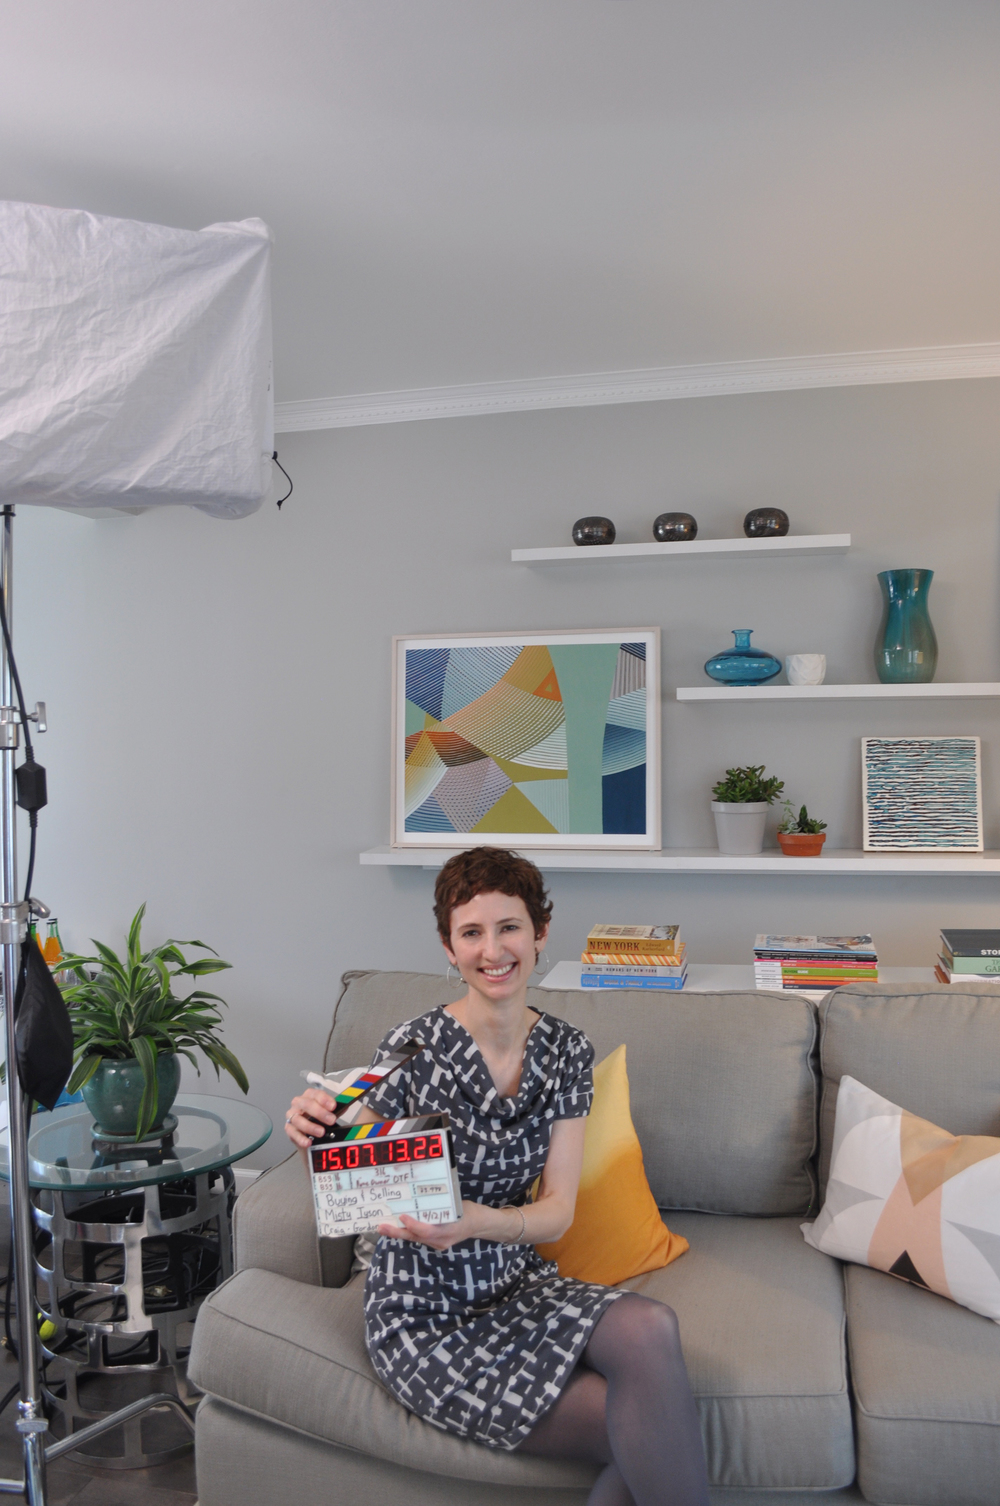 Kim Annick Mitchell Production Designer_HGTV Buying and Selling with The Property Brothers_Season 3_Episode 316_Behind The Scenes_Take Two!.jpg